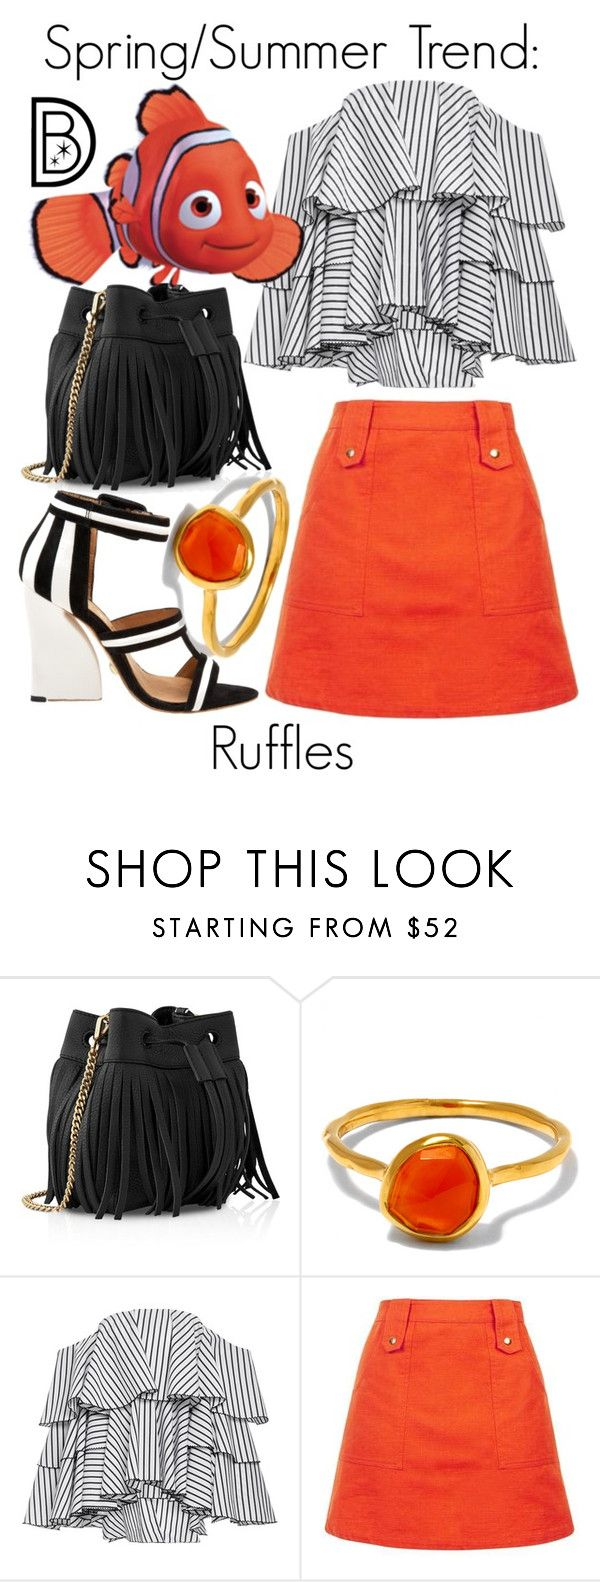 """""""Spring/Summer Trend: Ruffles"""" by leslieakay ❤ liked on Polyvore featuring Whistles, Monica Vinader, Caroline Constas, disney, springtrends, summerstyle and disneybound"""